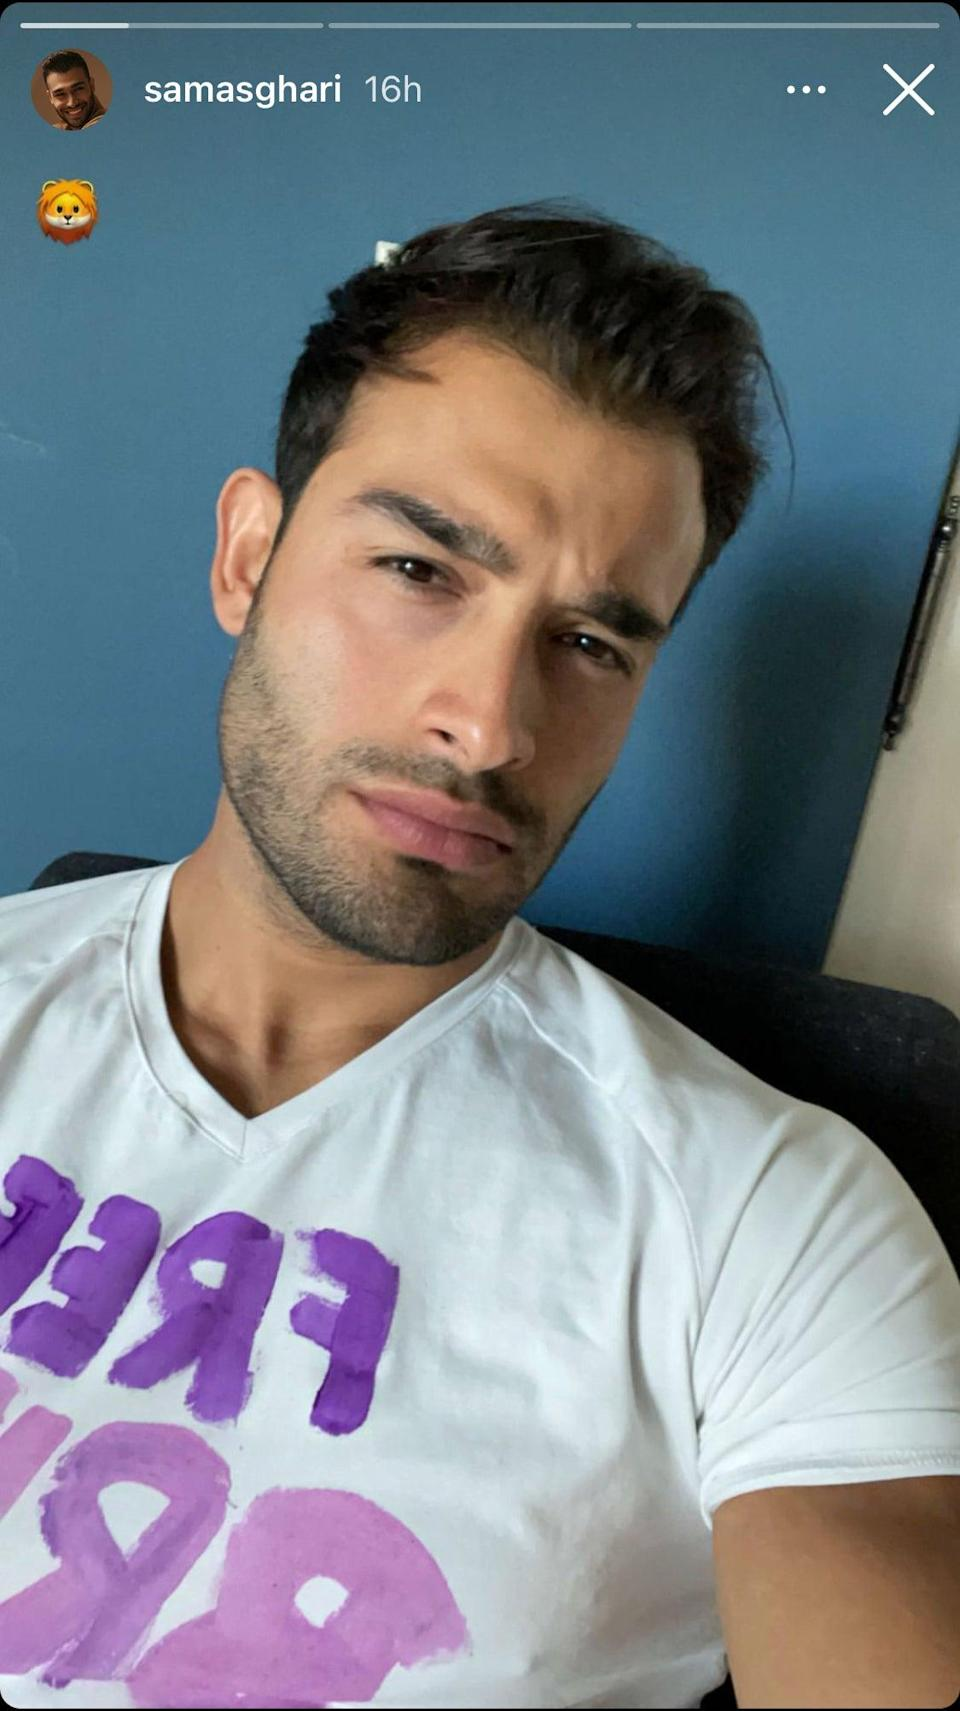 Britney Spears' boyfriend, Sam Asghari, posts a selfie on his Instagram account in which he appears to be wearing a pink and purple 'Free Britney' t-shirt, ahead of her court appearance on Wednesday 23 June 2021 (Sam Asghari/Instagram)